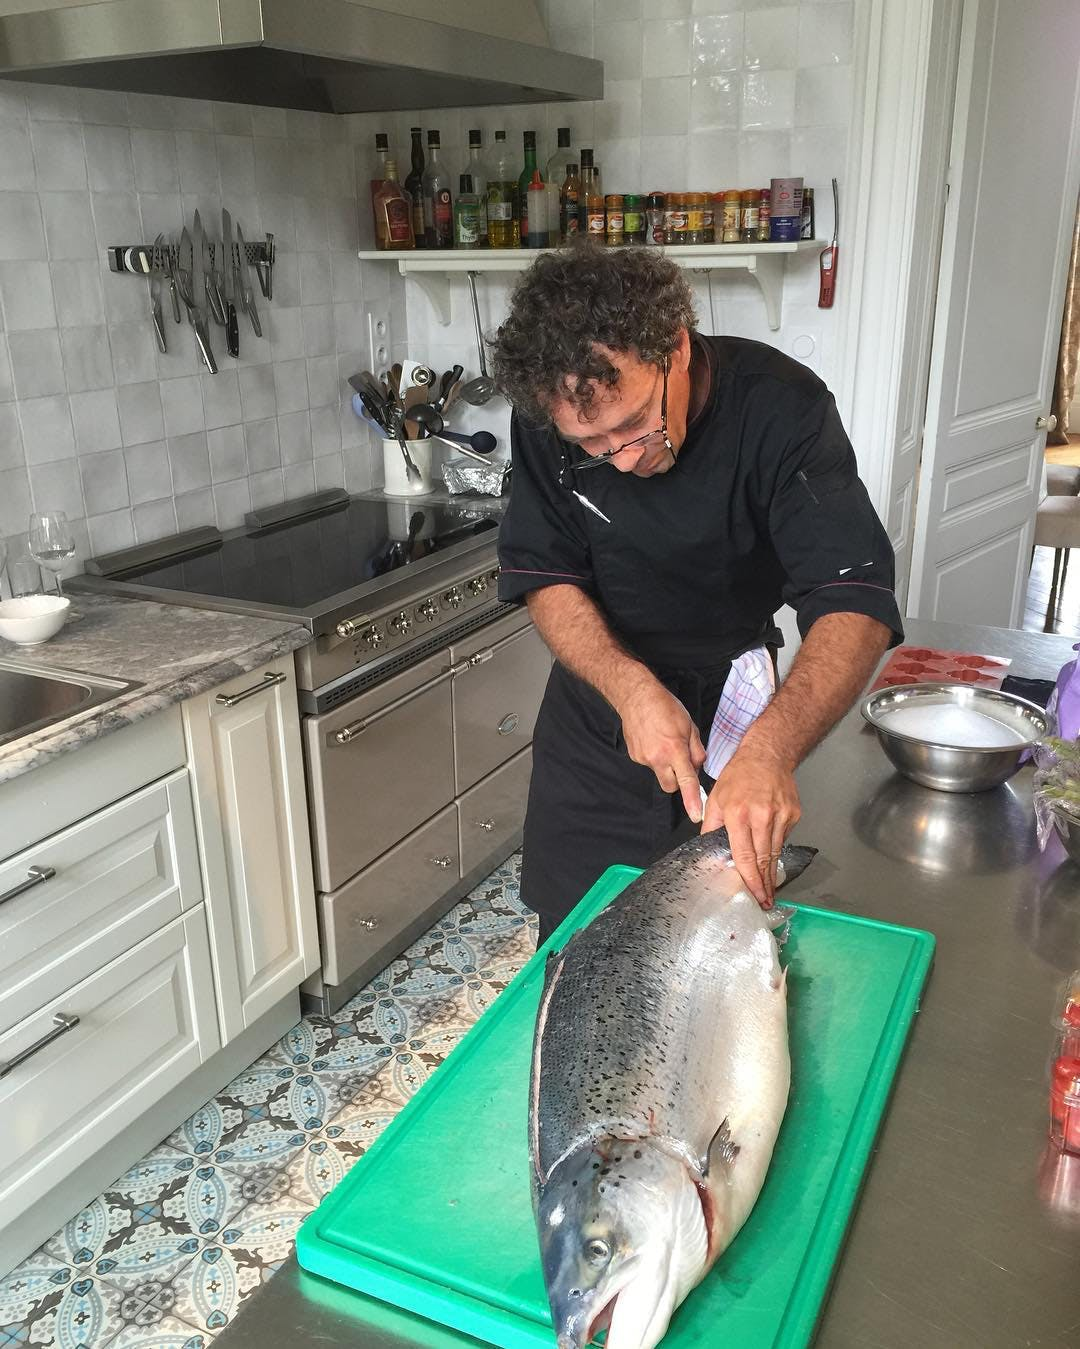 Chef in the kitchen: Behind the scenes at Château Valcreuse in La Roche Posay